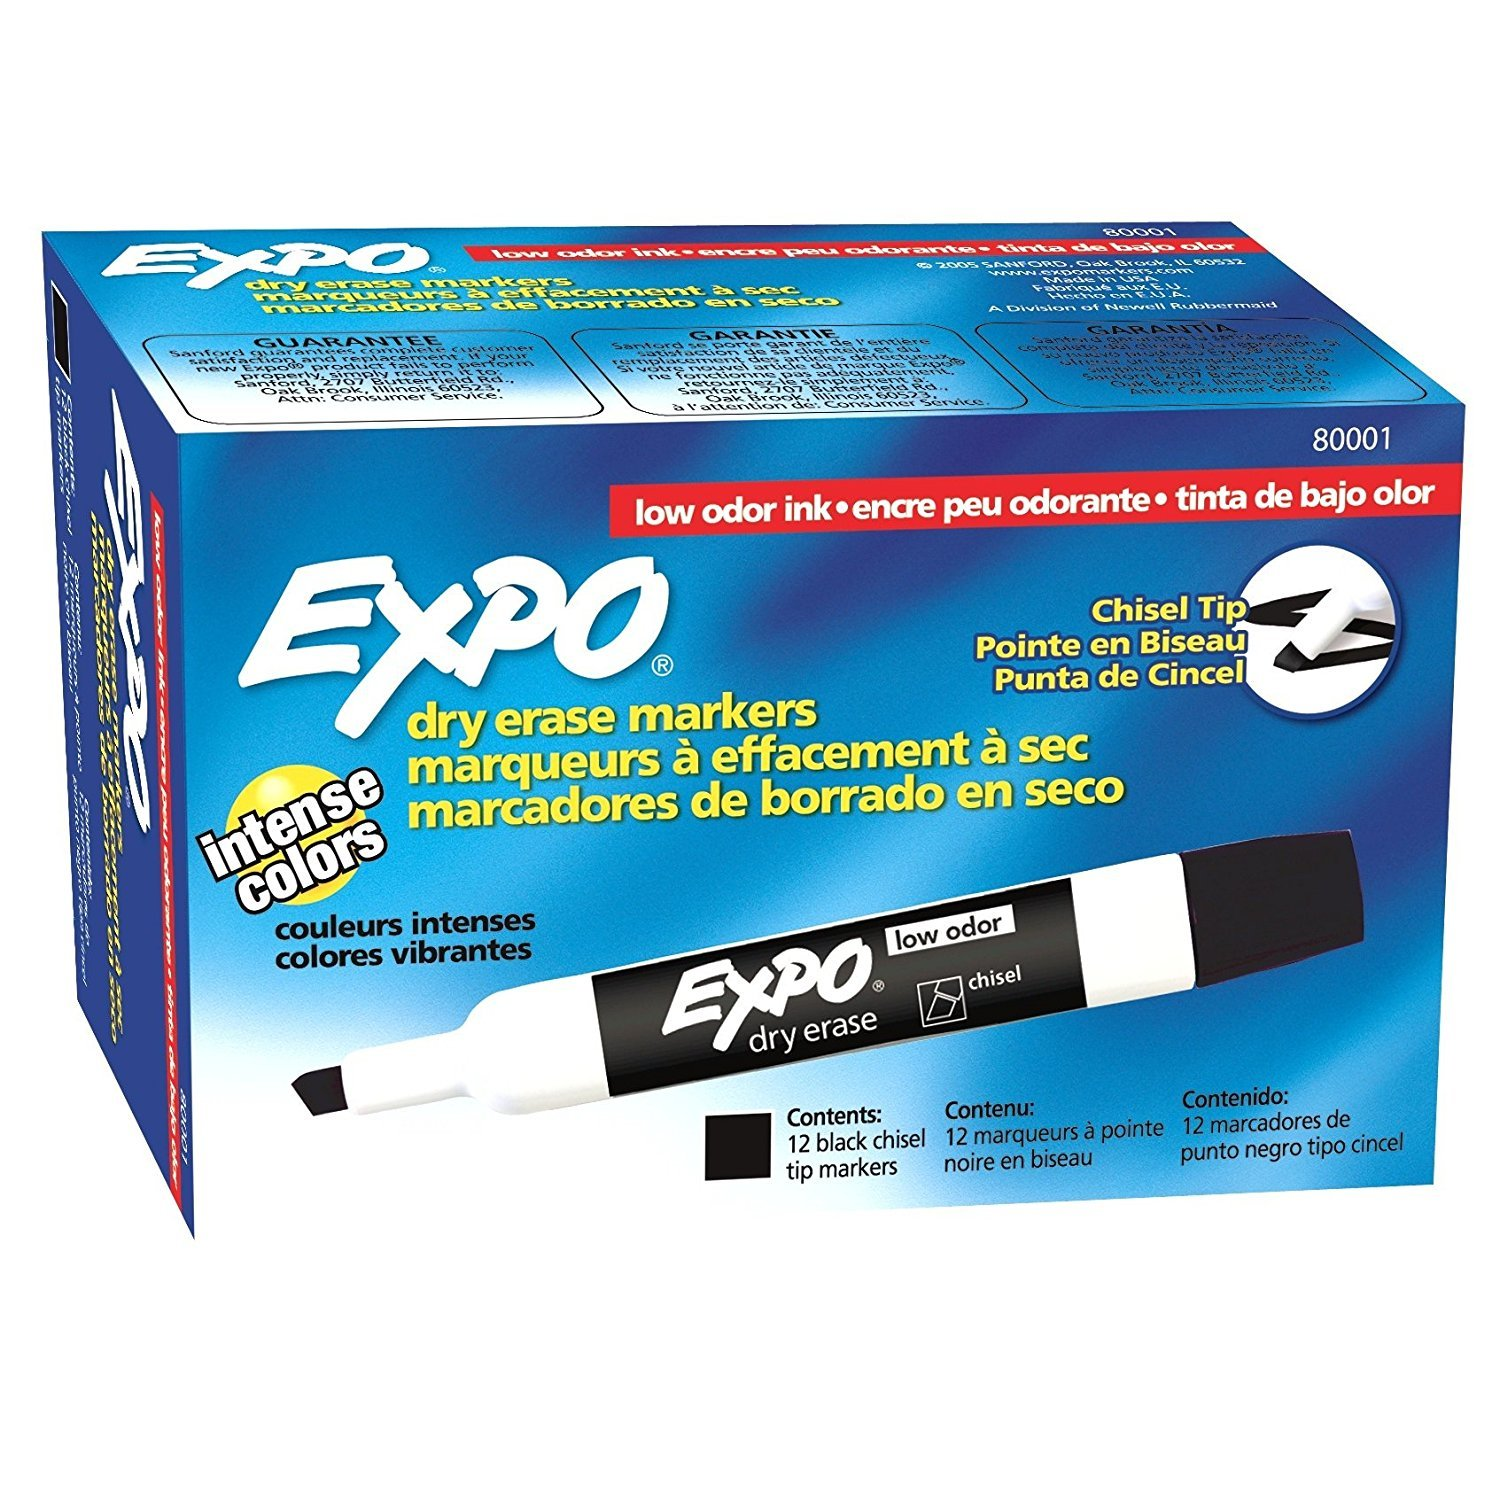 Expo 80001 Low Odor Chisel Point Dry Erase Markers, Black, 12 Units per Box, Pack of 6 Boxes, 72 Markers Total, Includes 5 Color Flag Set by Expo (Image #2)